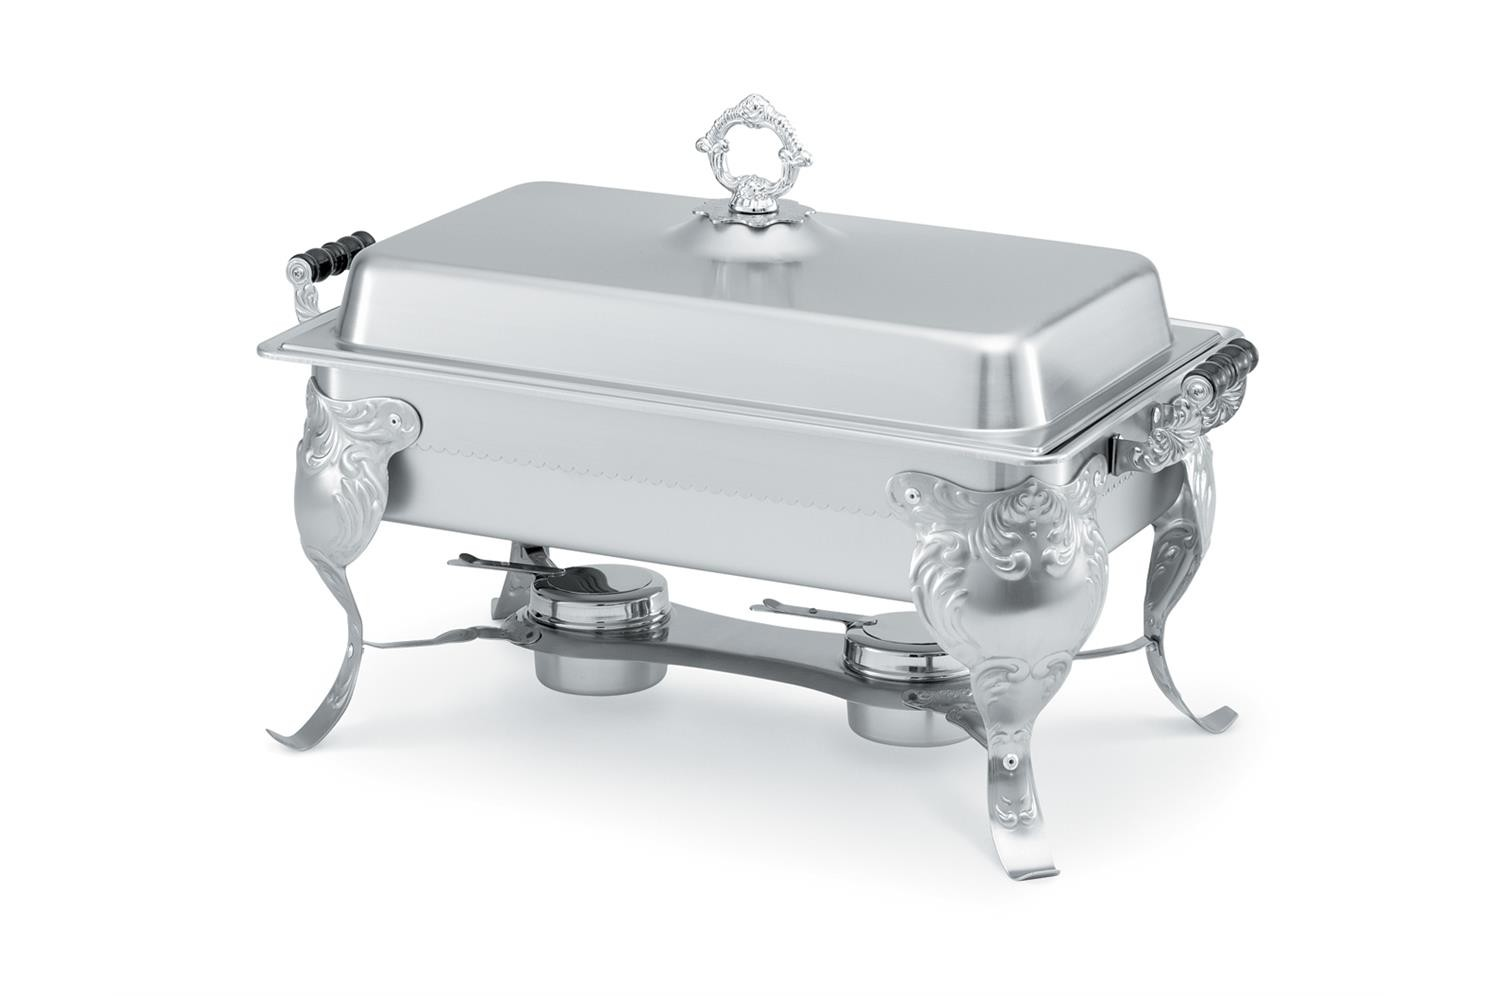 Vollrath 46880 Royal Crest Full Size Oblong Chafer 9 Qt.